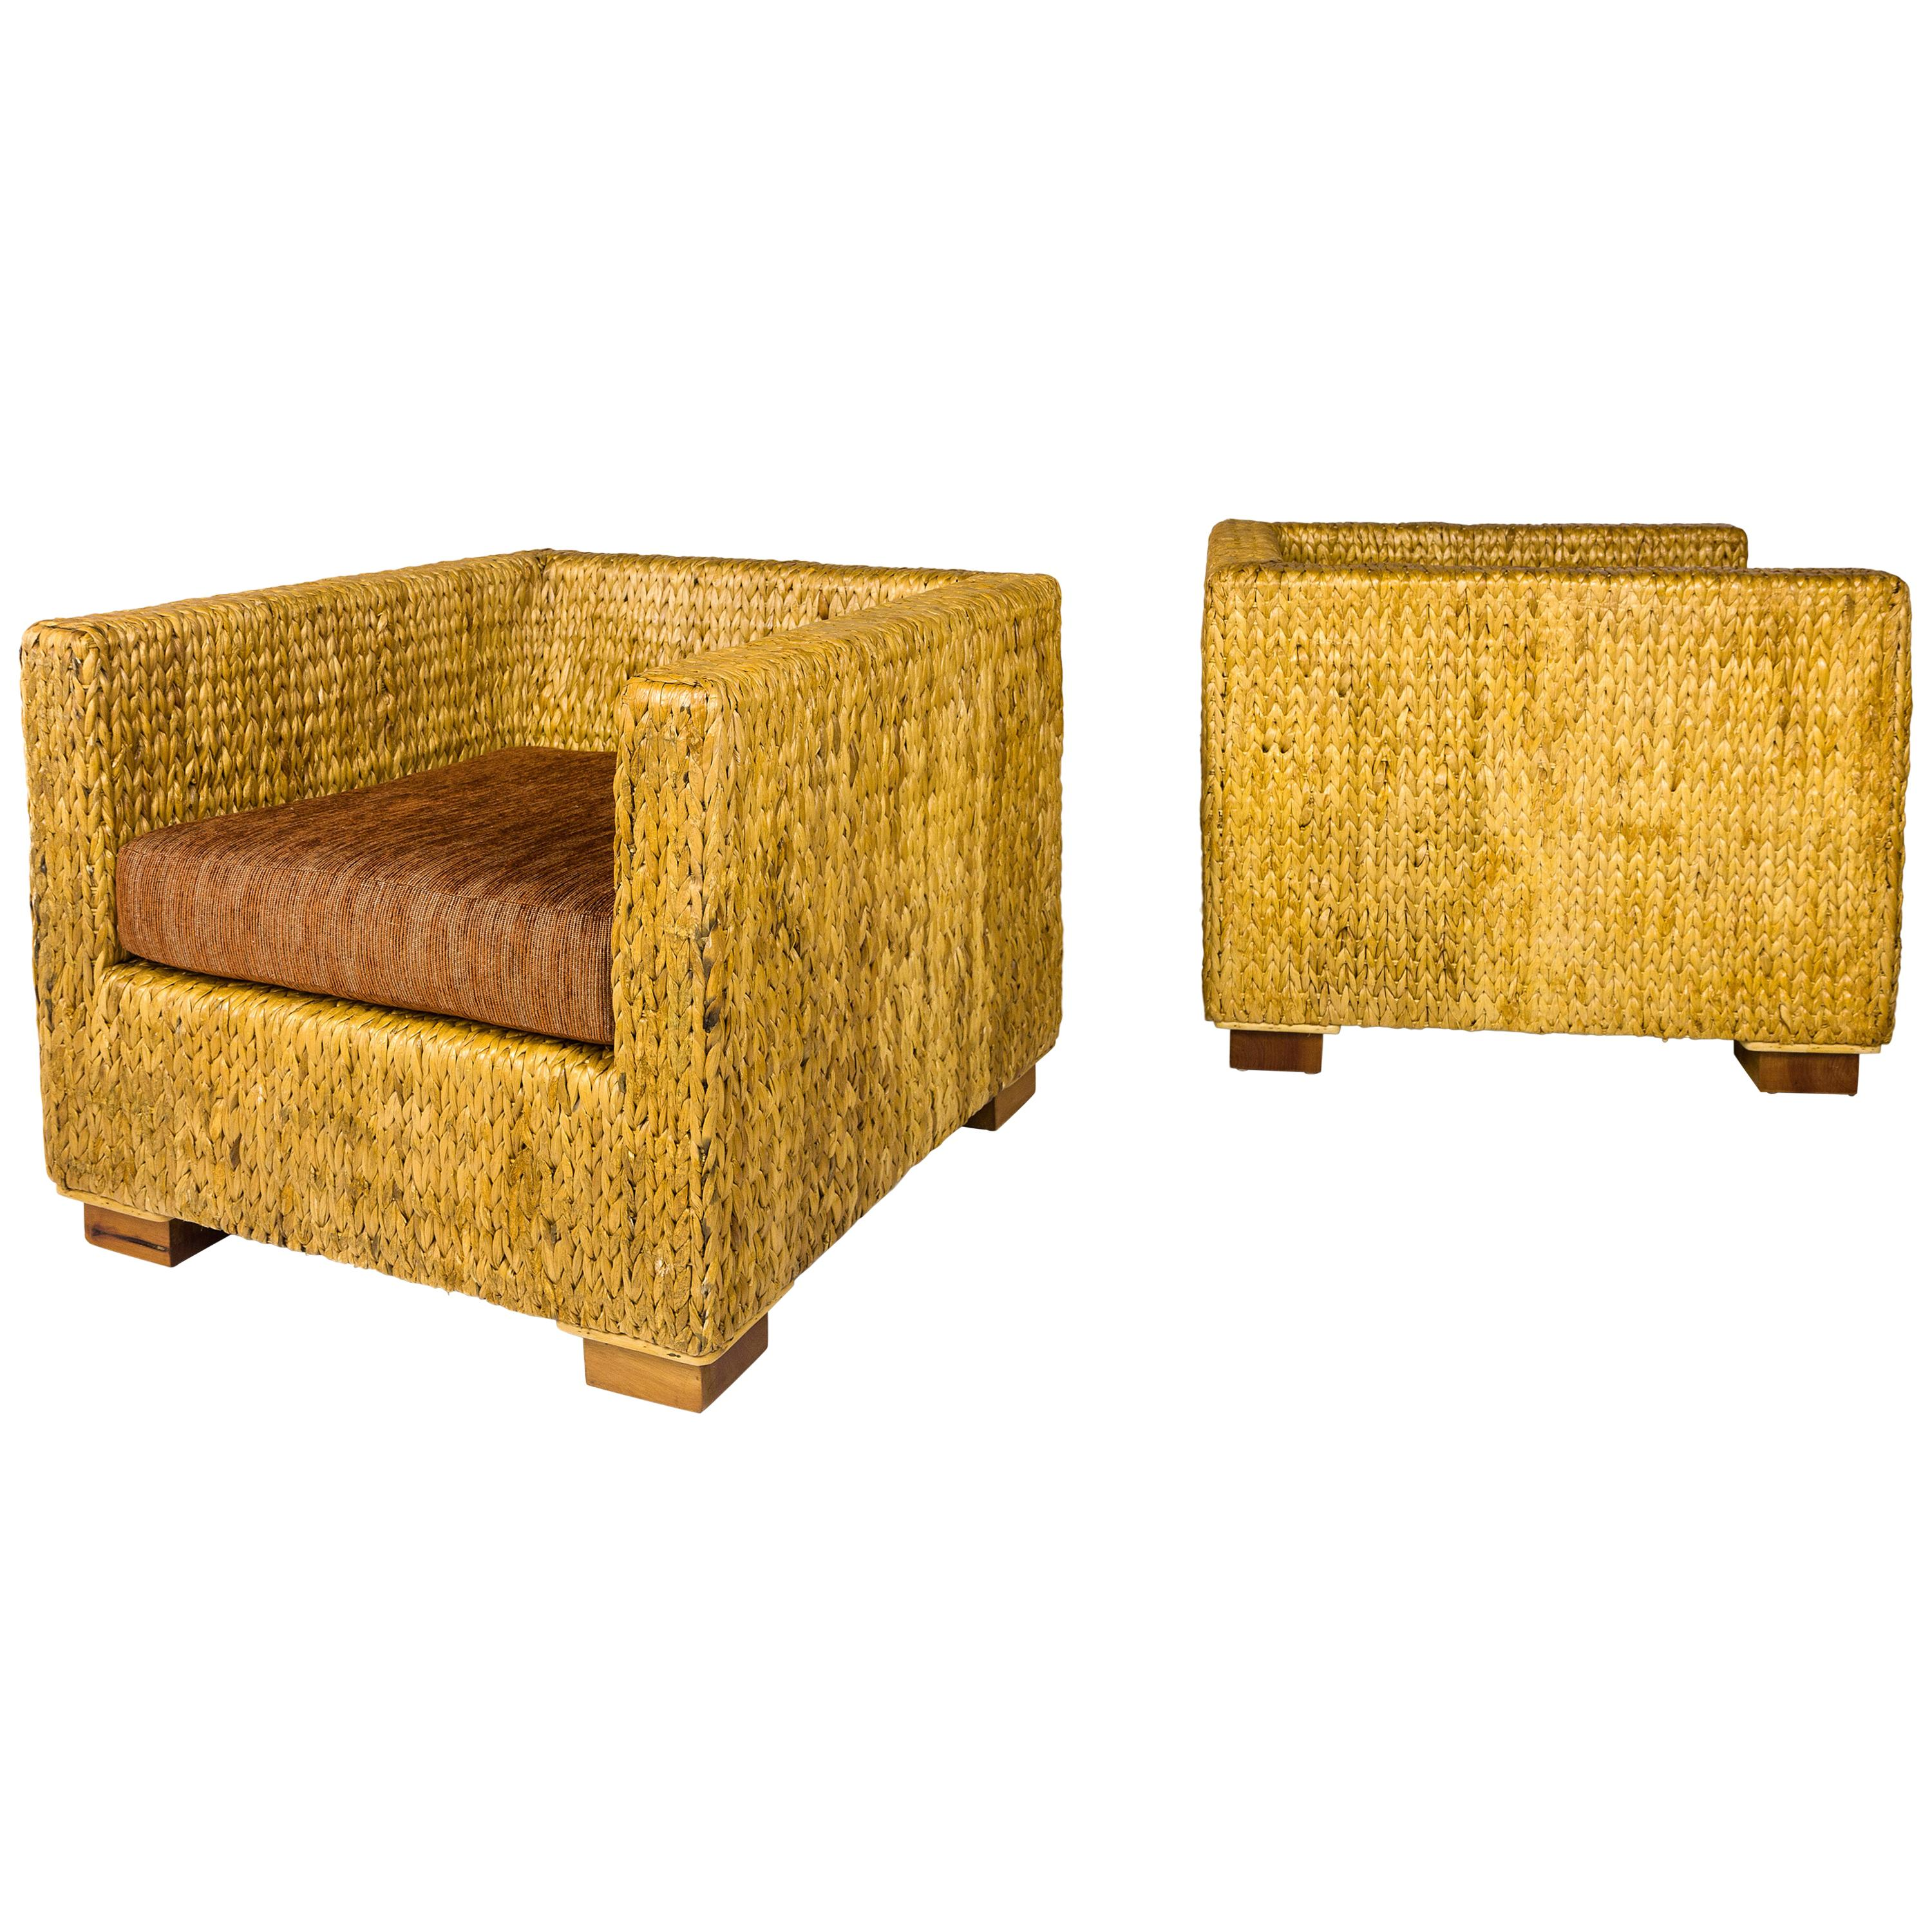 Pair of Straw Armchairs, circa 1980, France